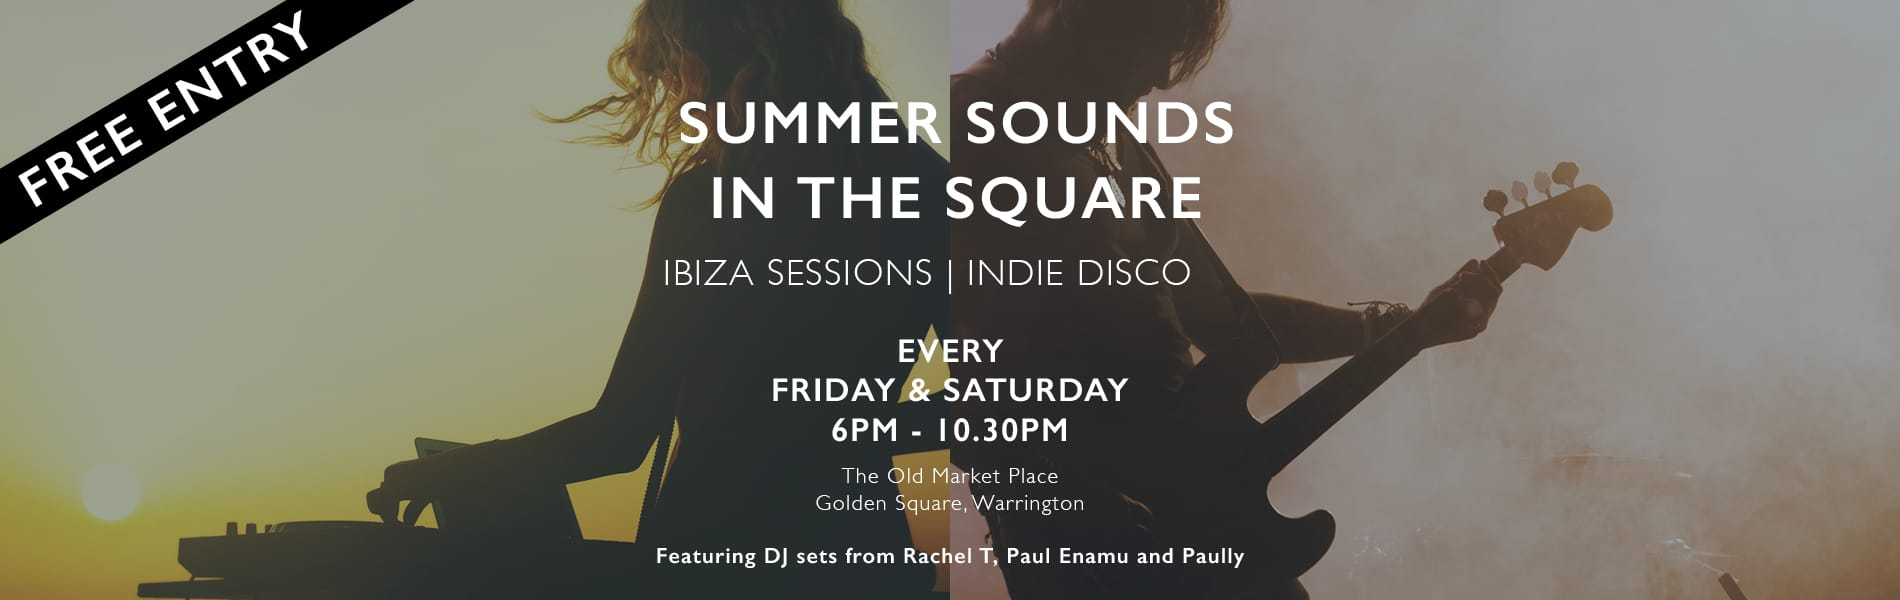 Summer sounds in the Square